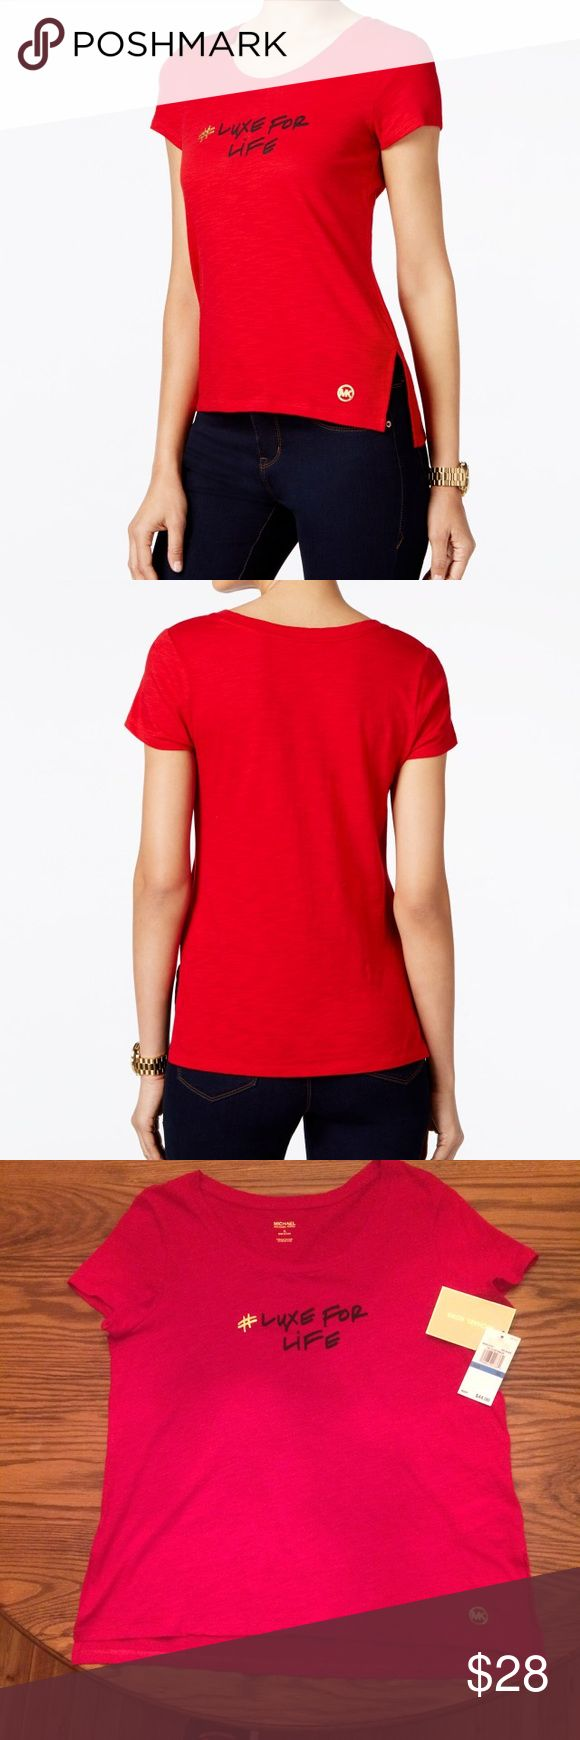 Michael Kors #Luxe For Life Graphic T-Shirt Cotton. Crew neckline. Pullover styling. Graphic #Luxe for Life print on front. Hits at hip. Michael Kors Tops Tees - Short Sleeve